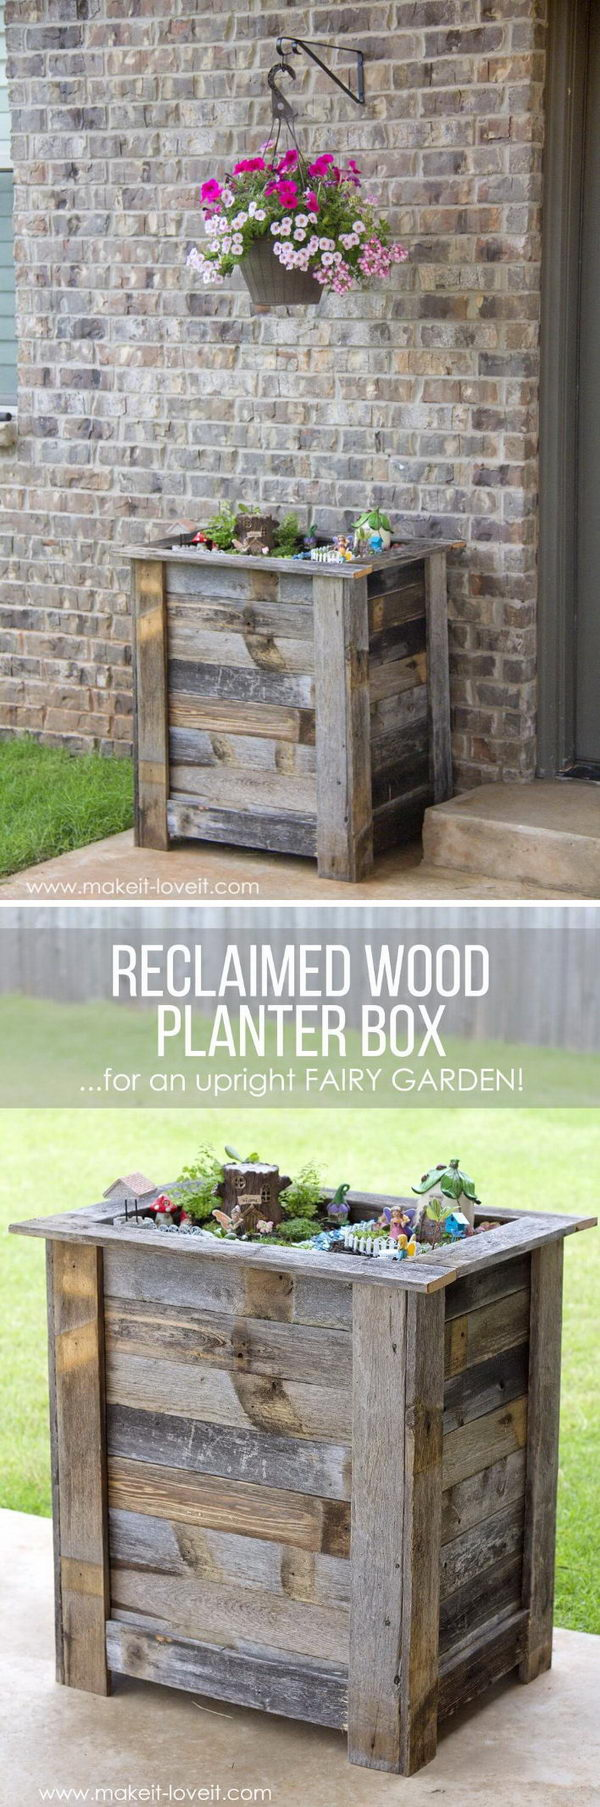 DIY Reclaimed Wood Planter Box for a Fairy Garden.